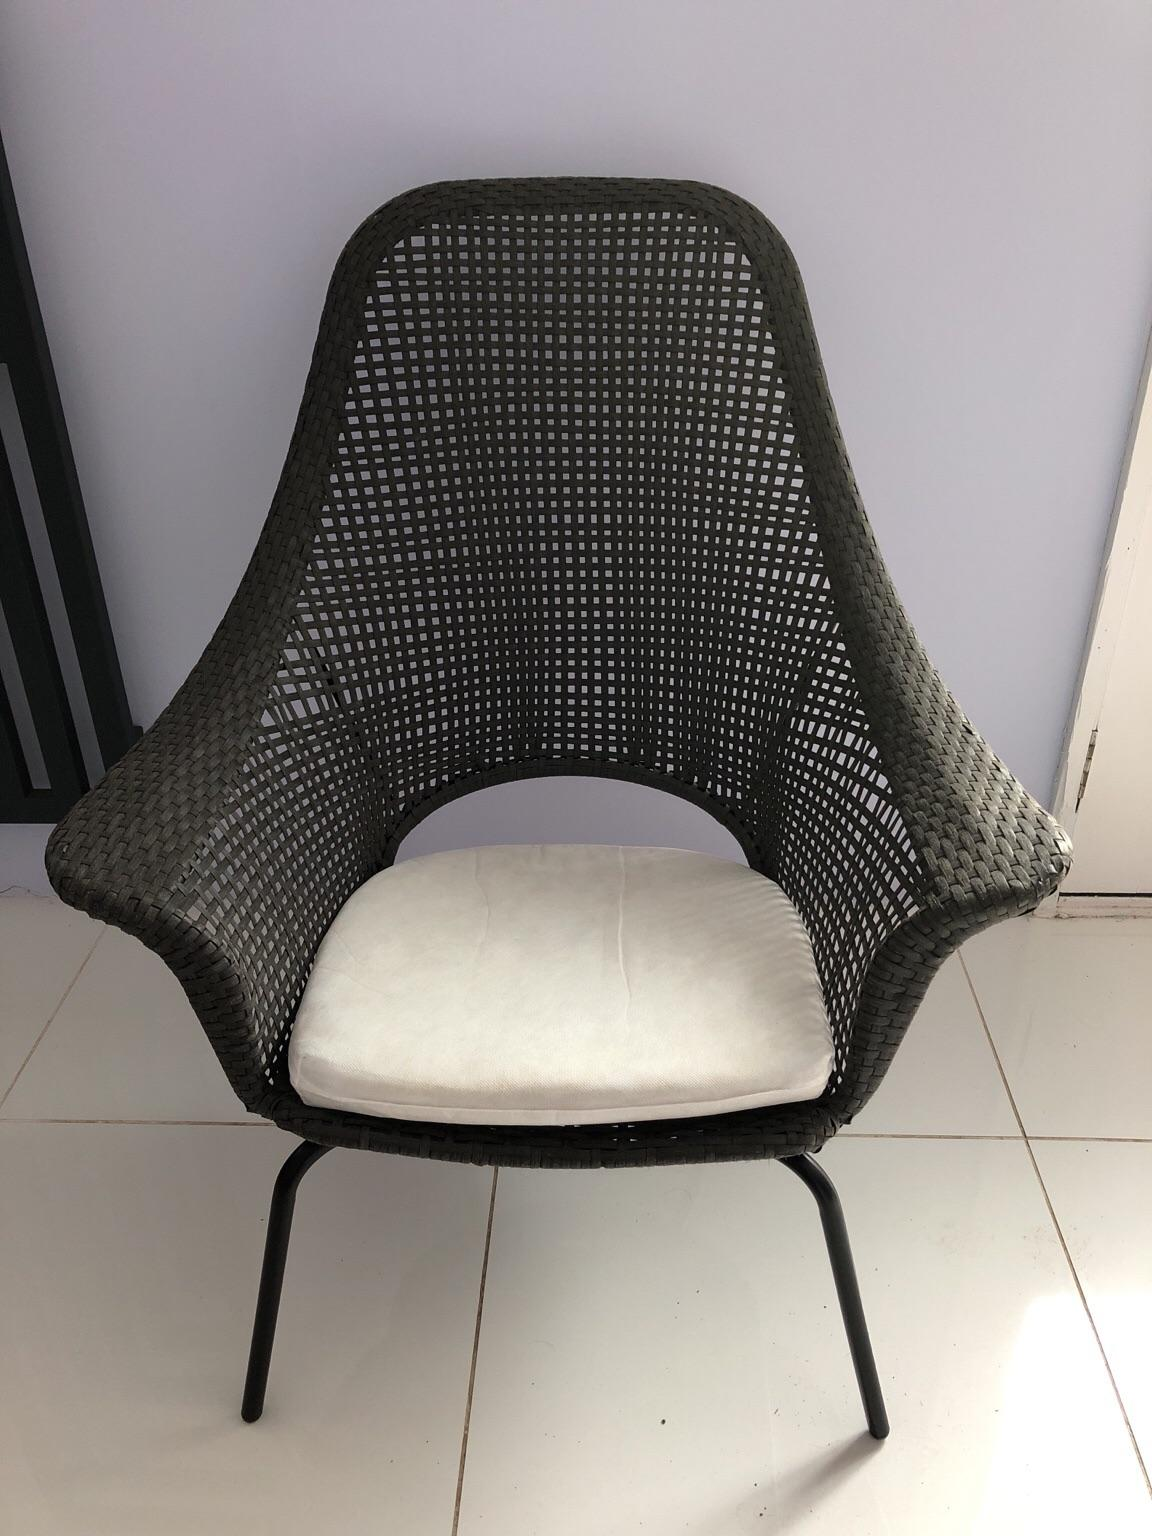 Ikea Ammero Rattan Chairs In Denny For